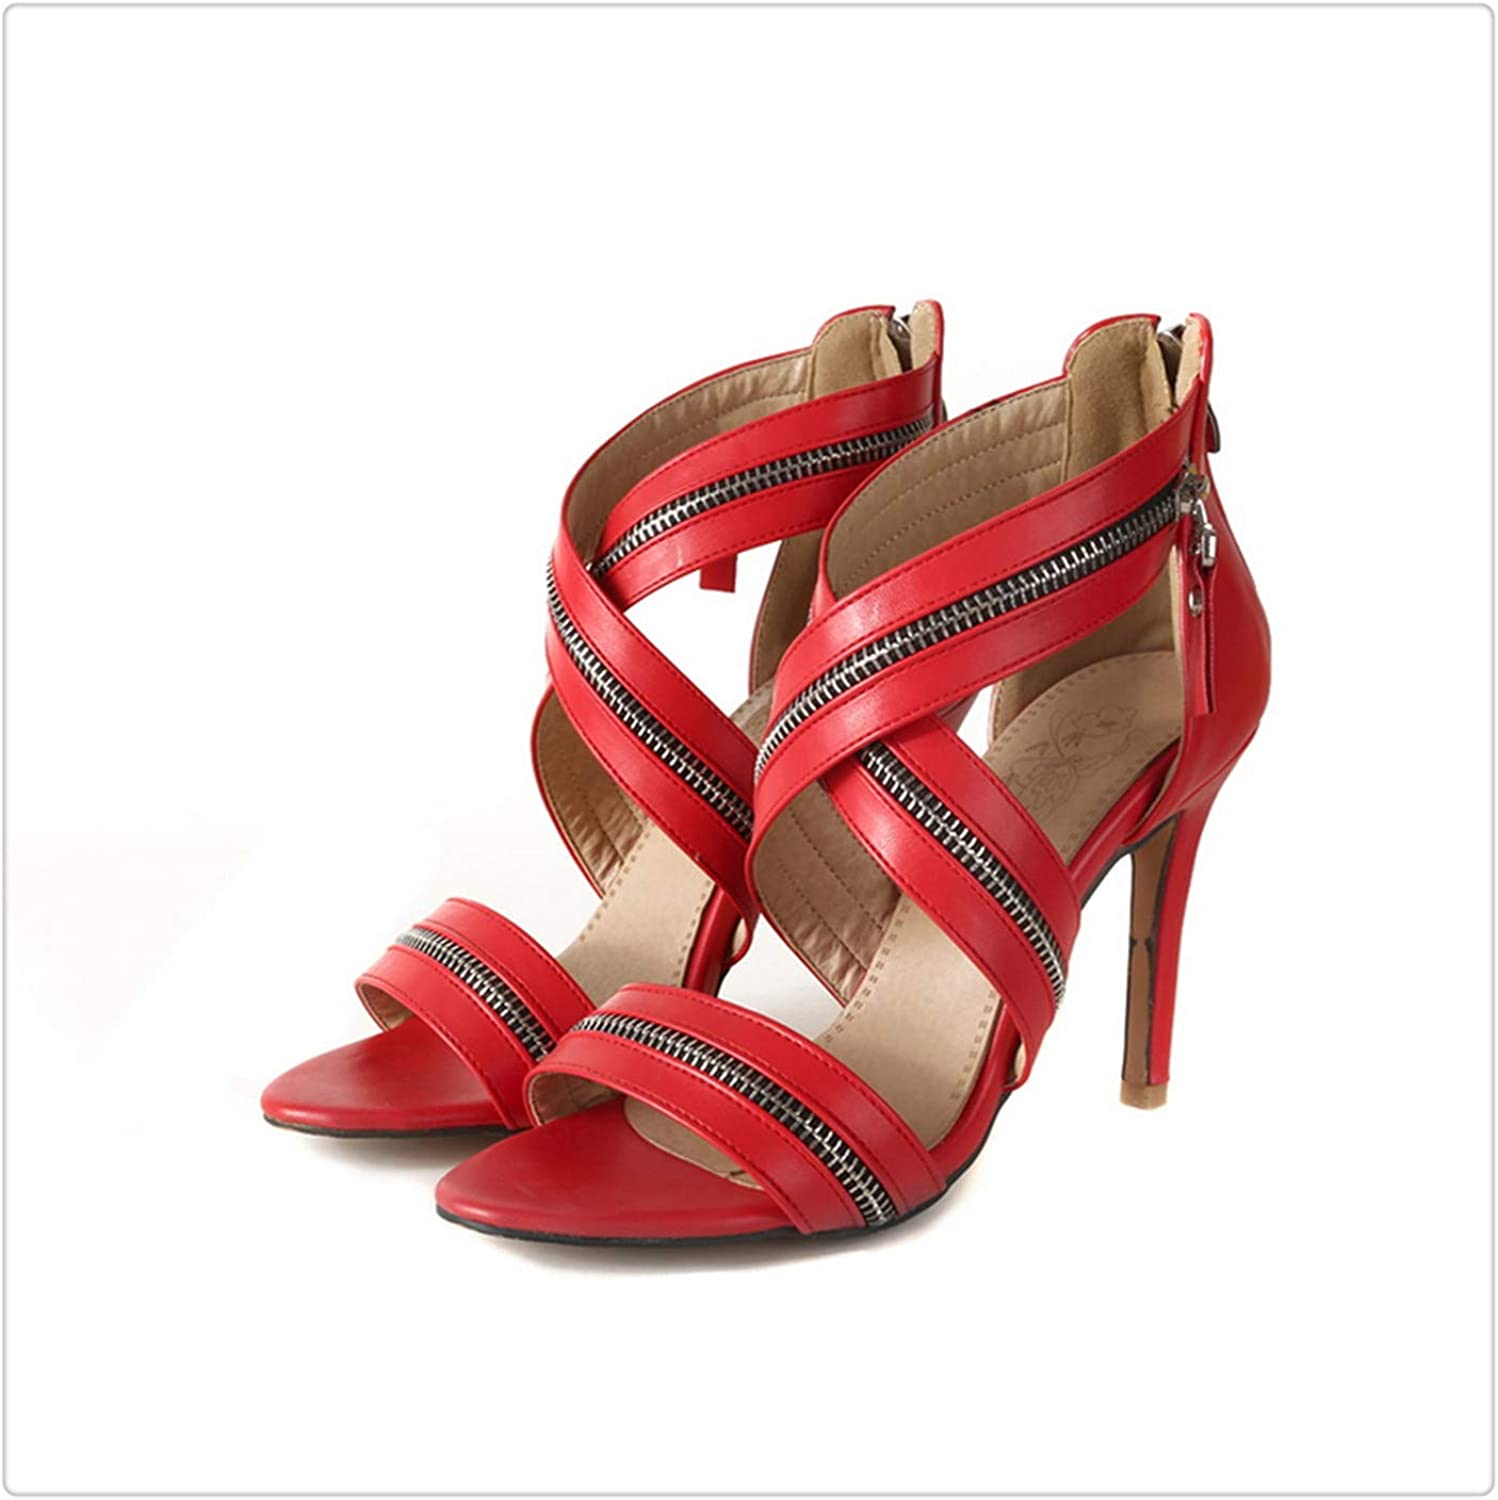 Msanlixian Super high Heels Sexy Party Metal Decoration Thin Heel Gladiator Sandals Women's shoes Large Size 32-46 Red 581-9 3.5